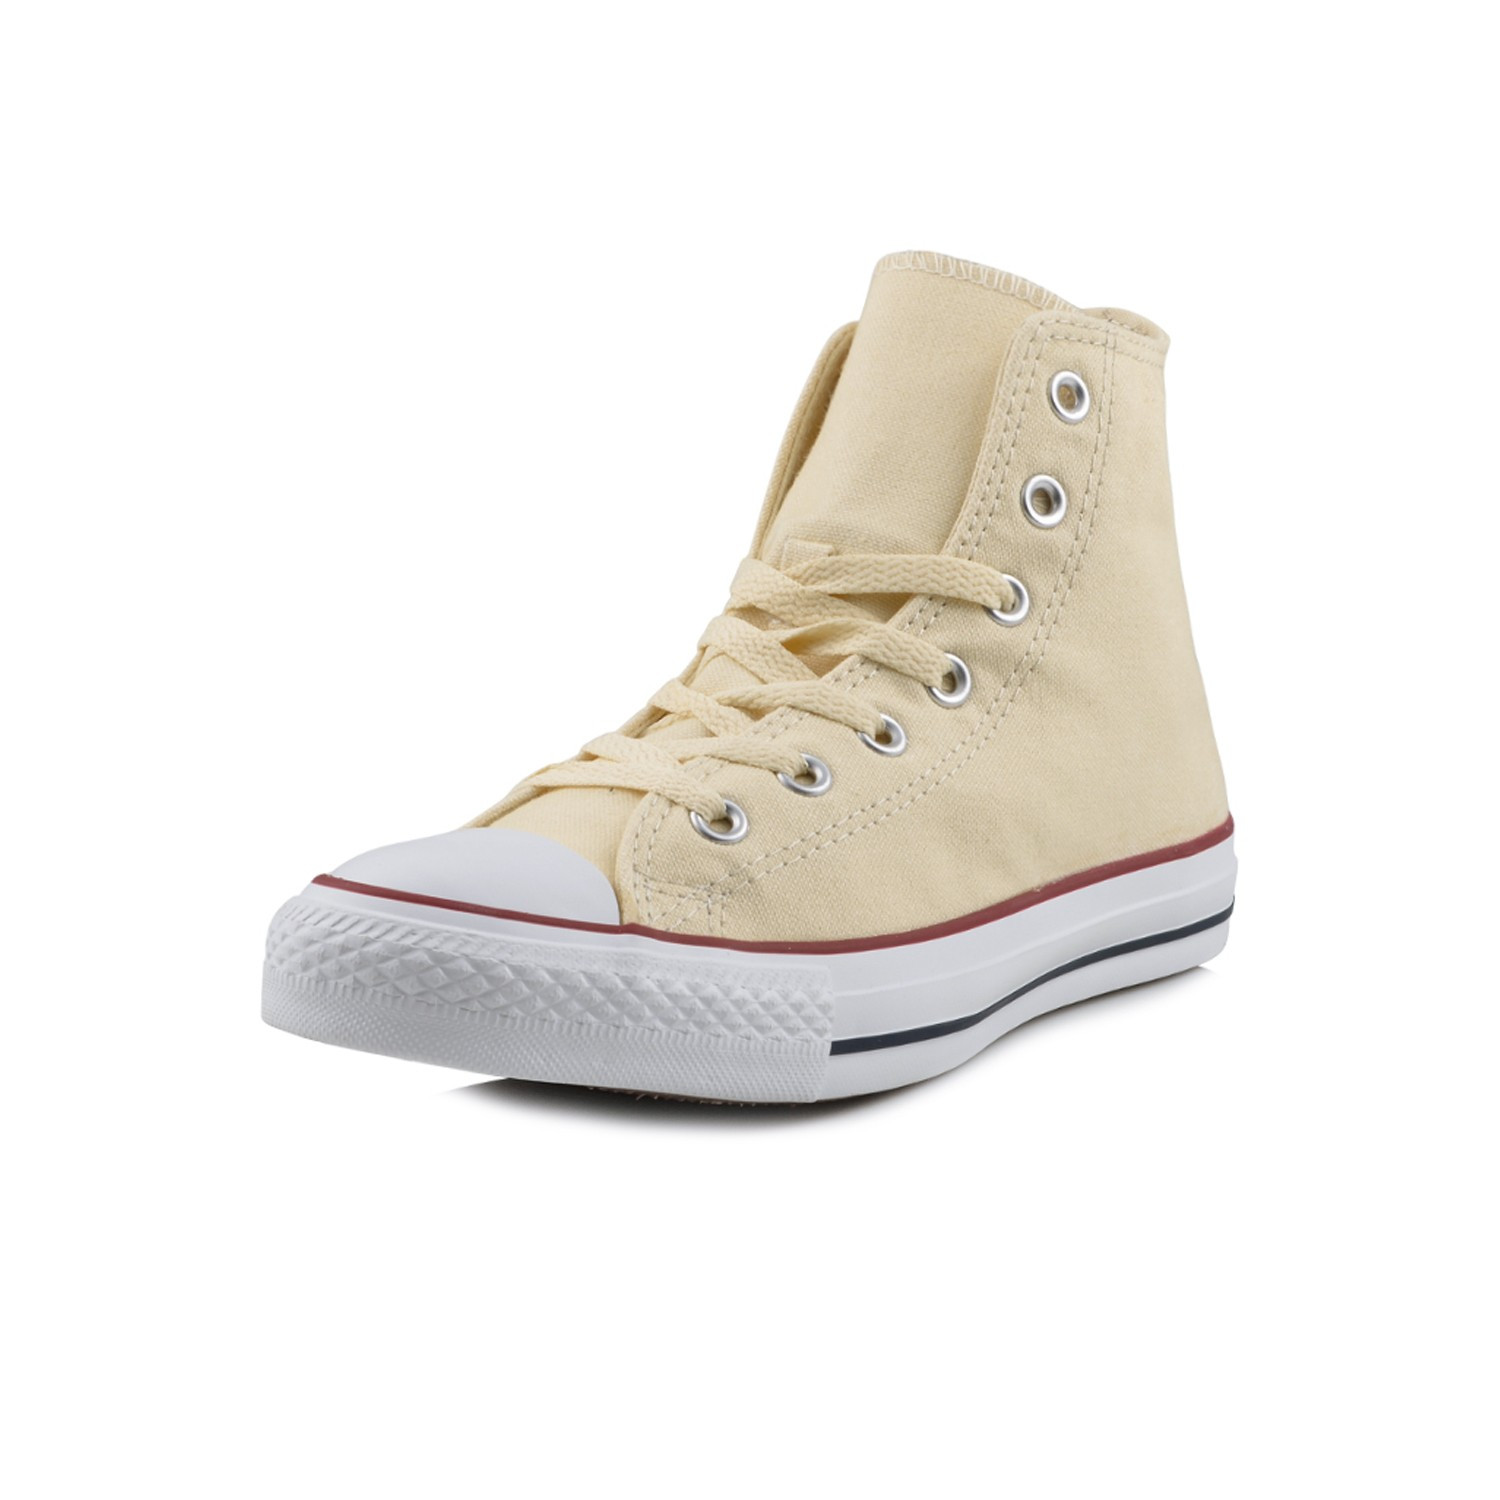 Converse Sneakers Chuck Taylor All Star Core Hi M9162C Online shop for sneakers, shoes and boots